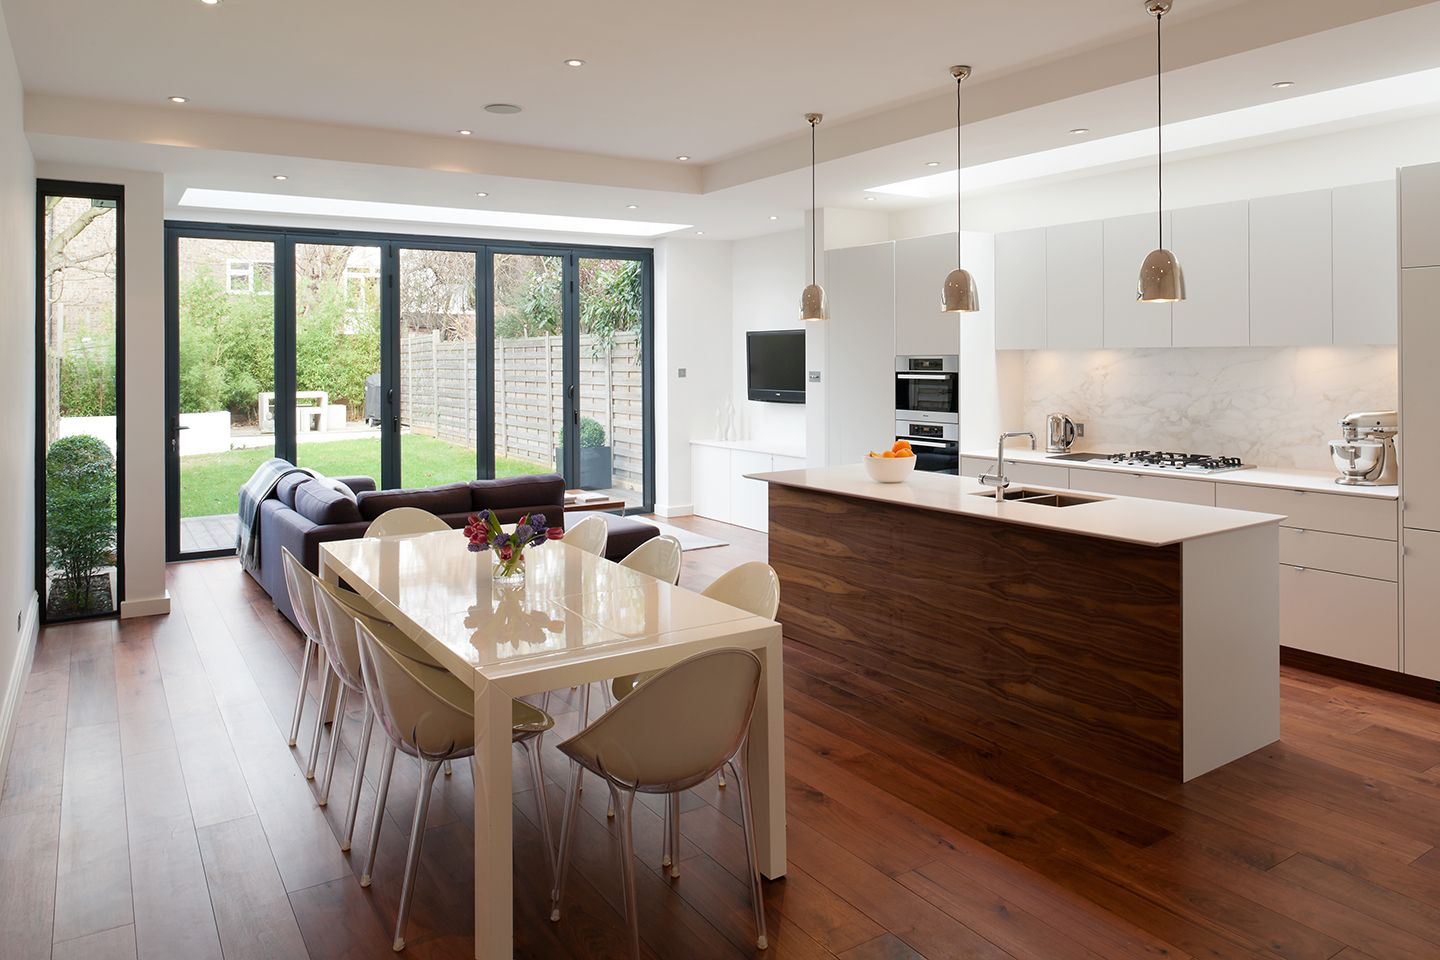 Creating A Kitchen For Entertaining: The Objective Was To Create A Large And Bespoke Family